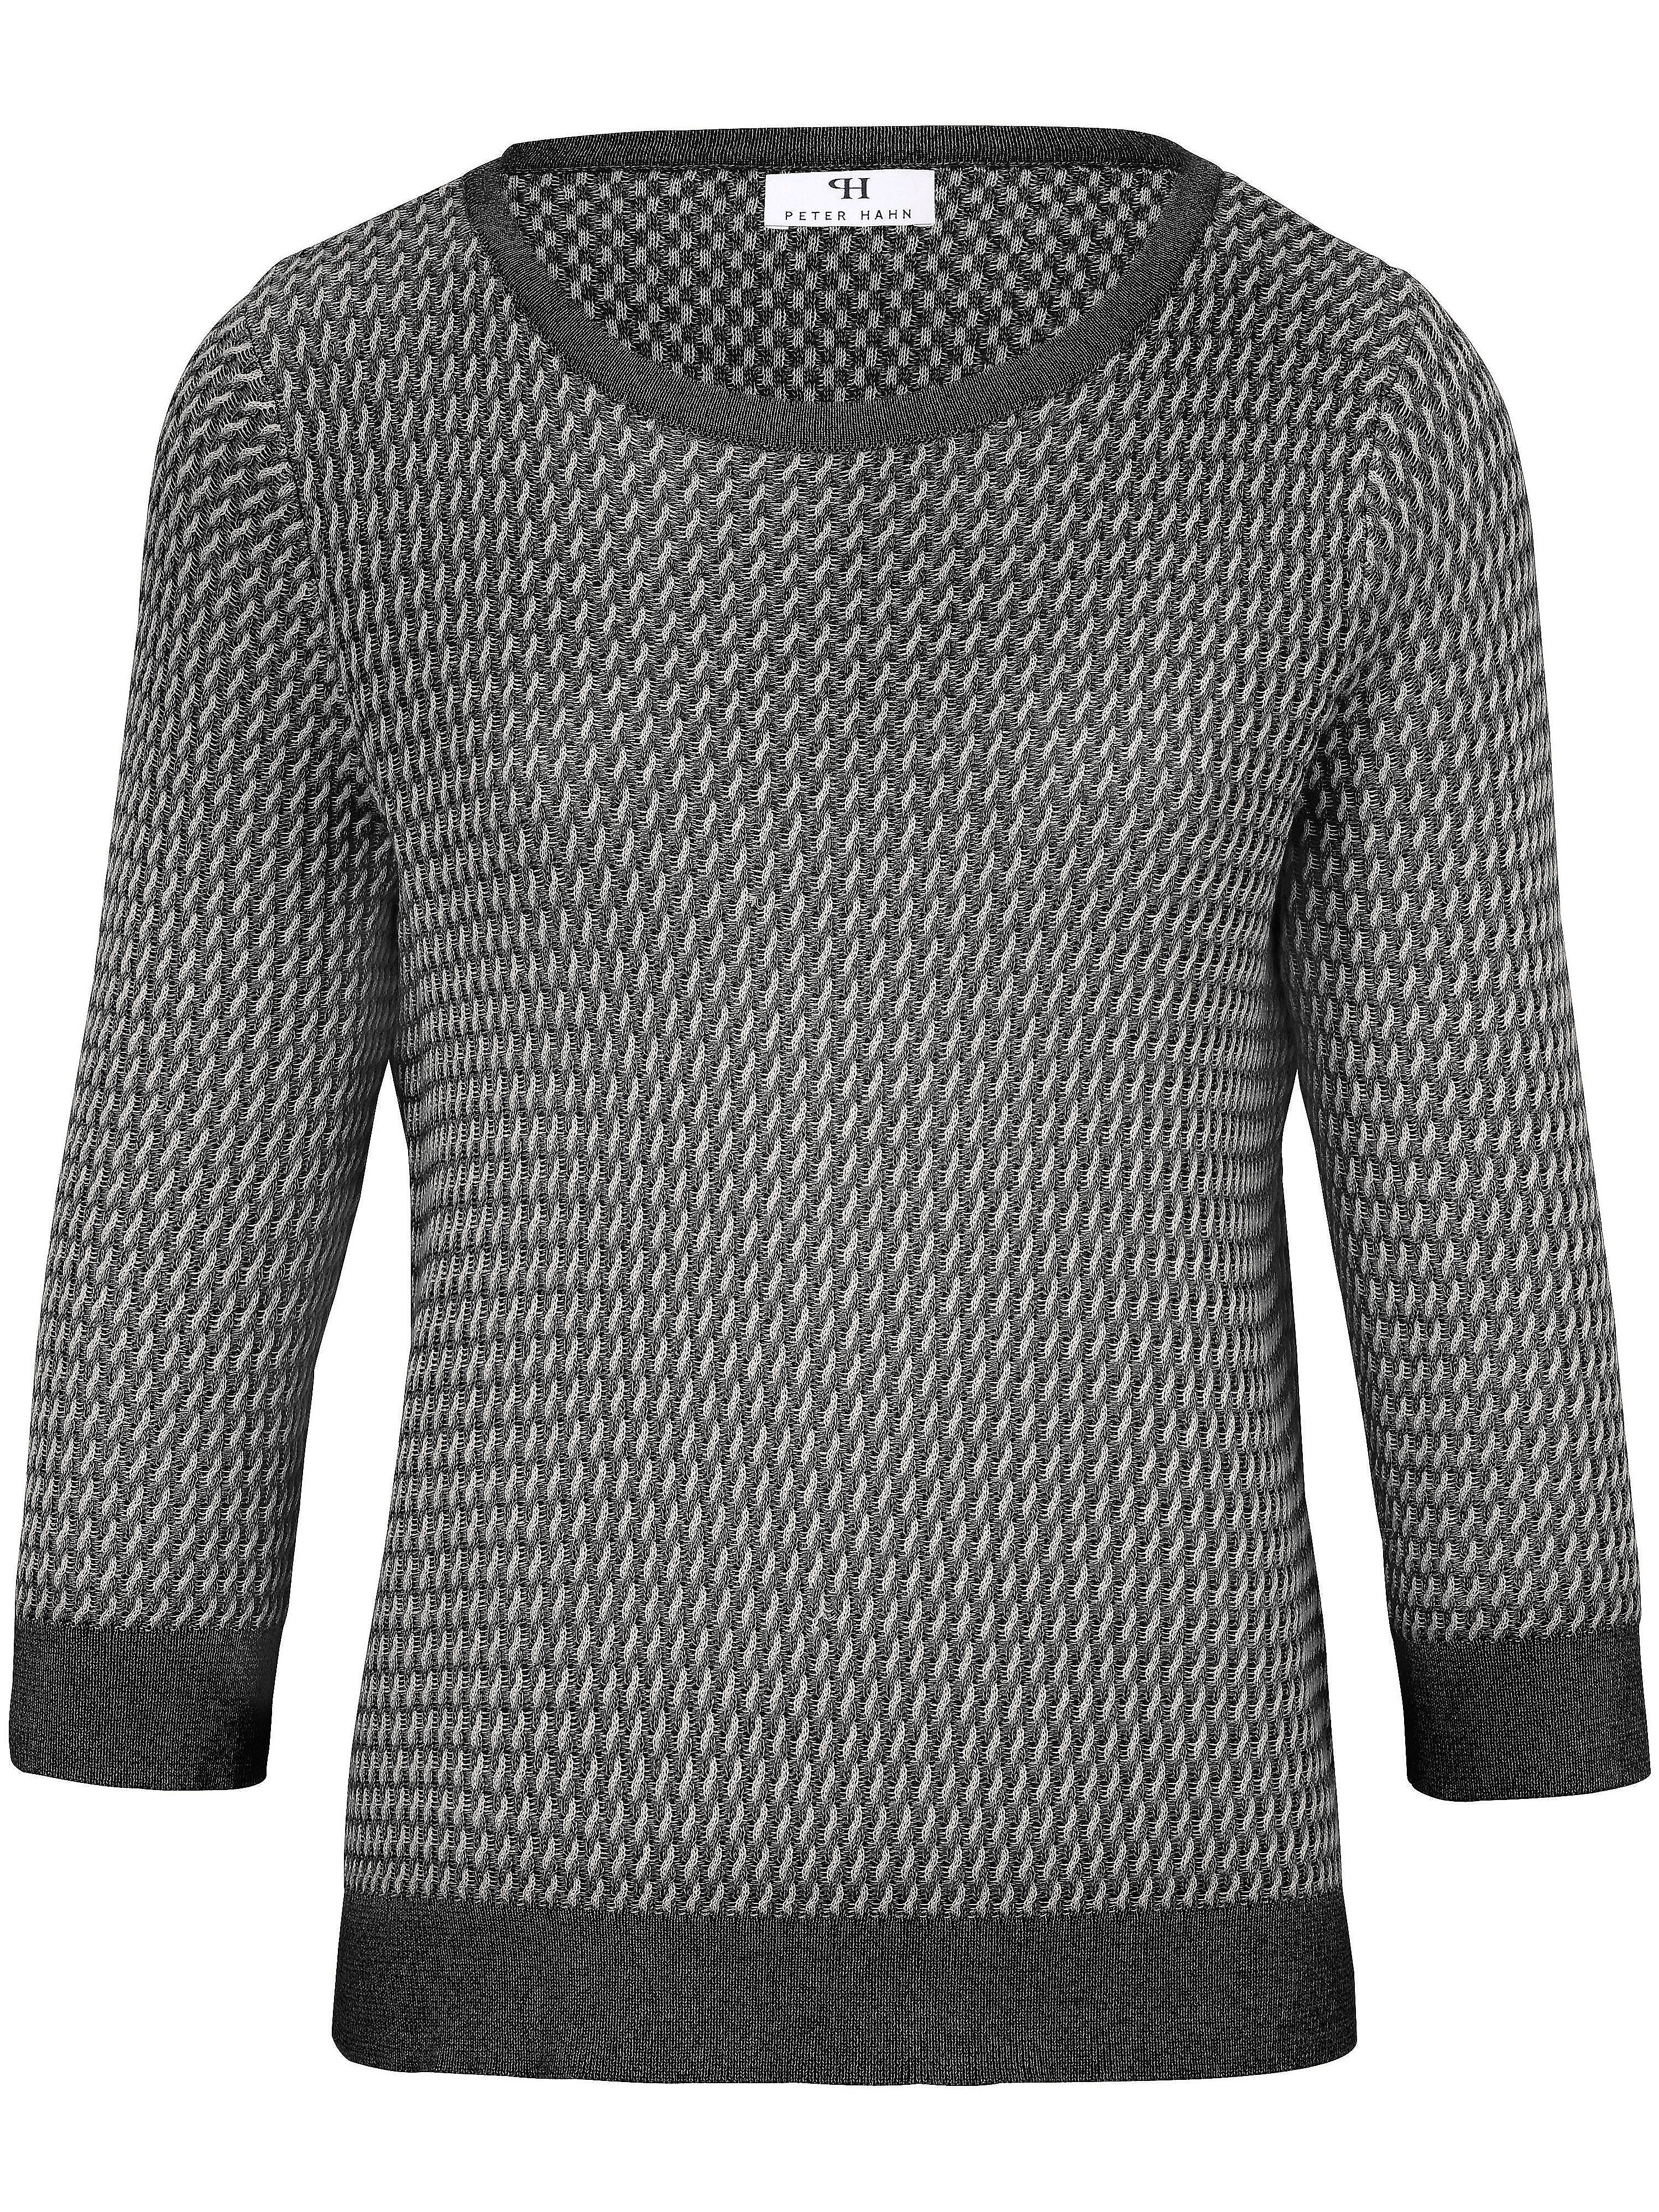 Le pull 100% coton Supima® manches 3/4.  Peter Hahn noir taille 52